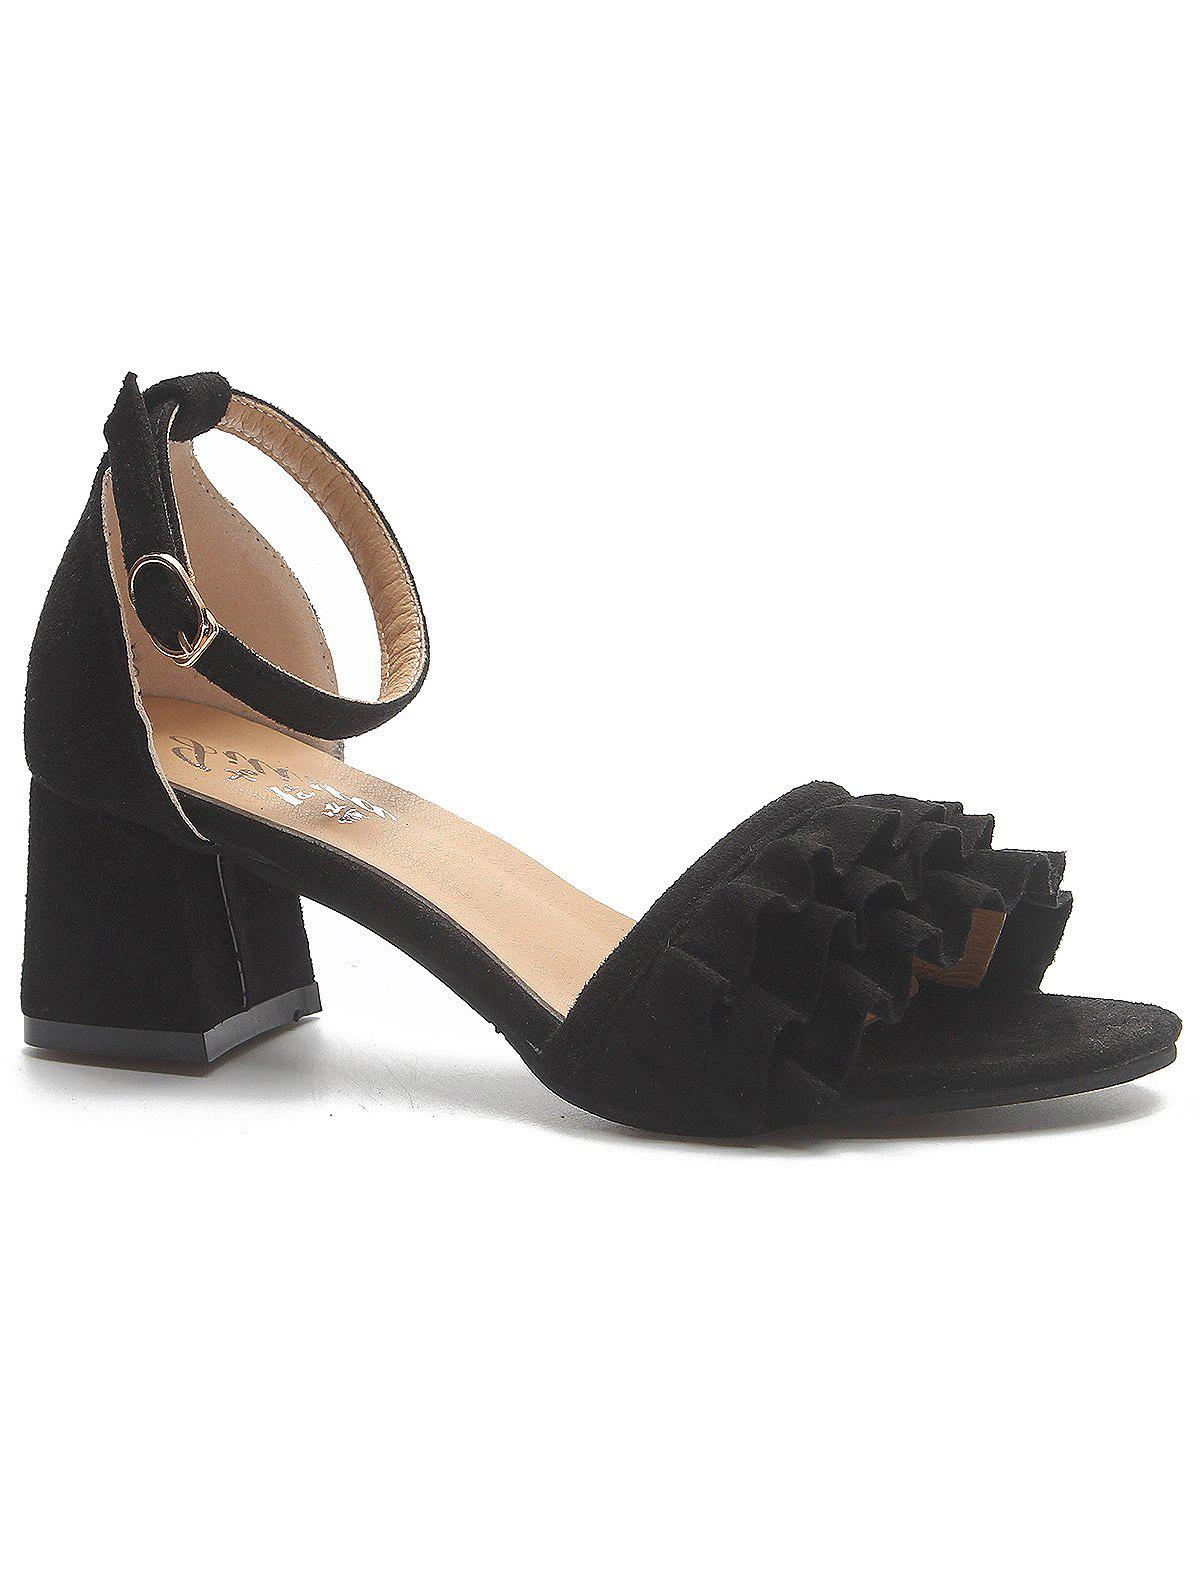 Unique Ruffle Ankle Strap Chunky Heel Pumps